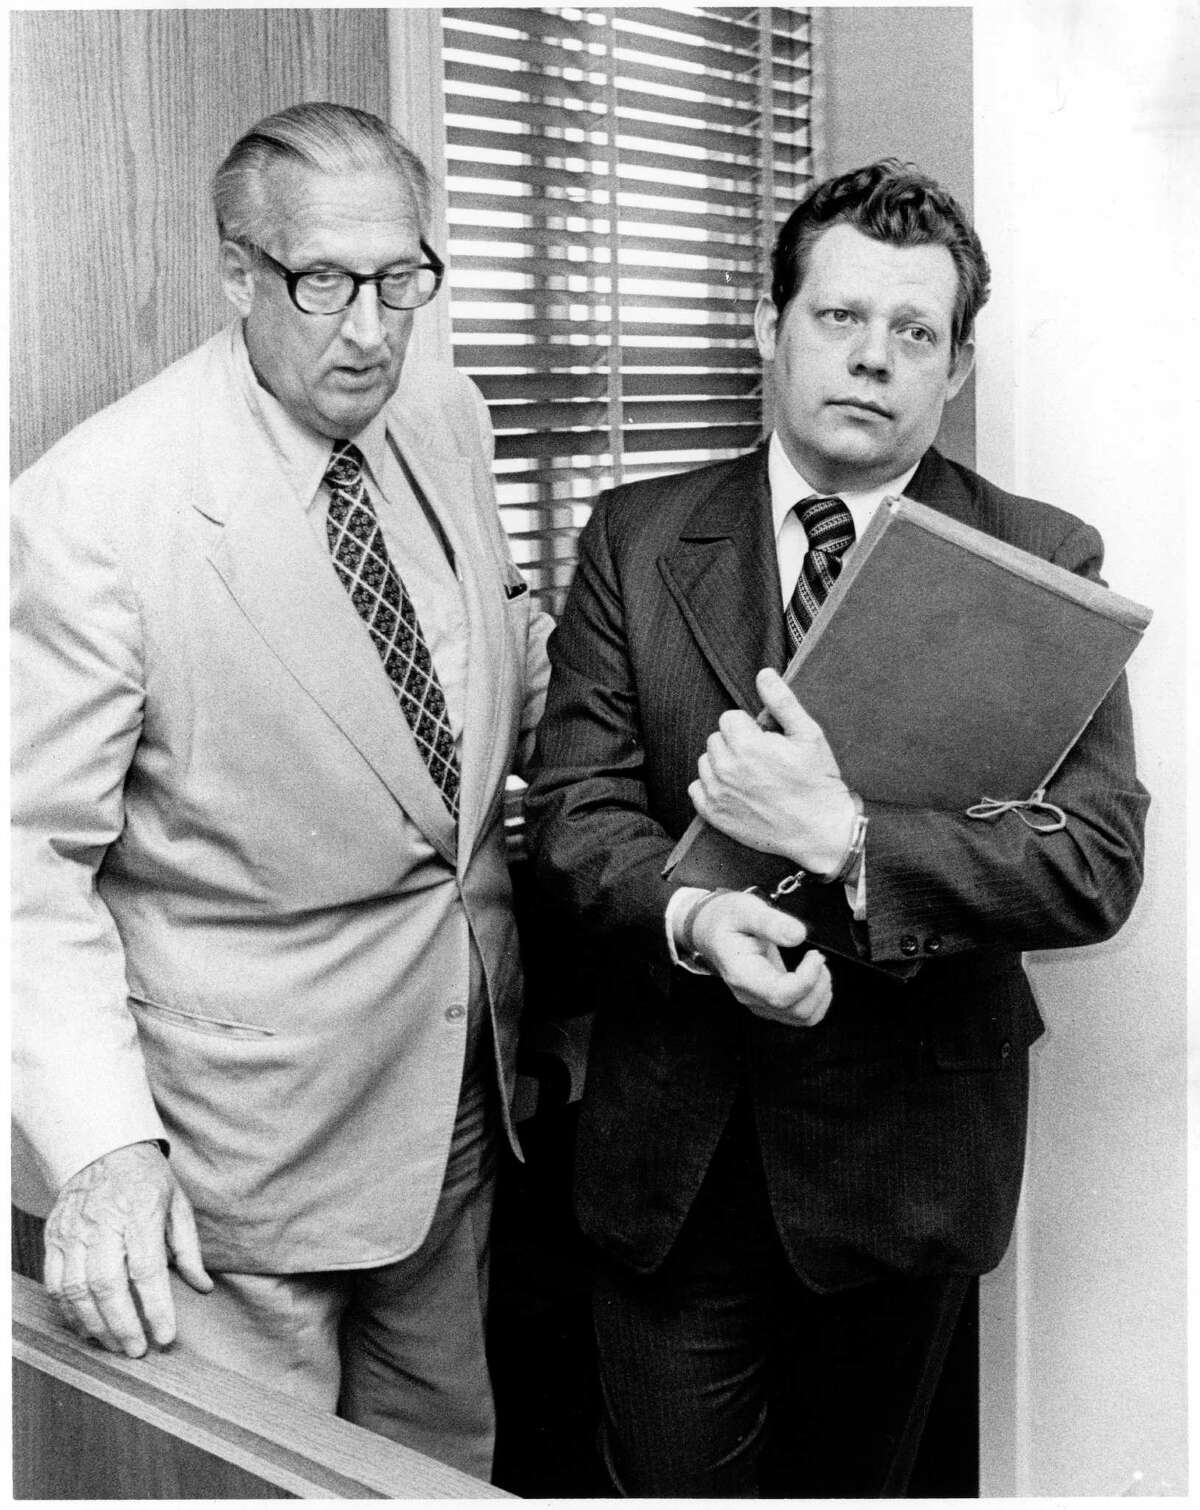 Here, Ronald Clark O'Bryan, right, is escorted from the courtroom by a bailiff after hearing the guilty verdict on June 3, 1975. He was sentenced to death.